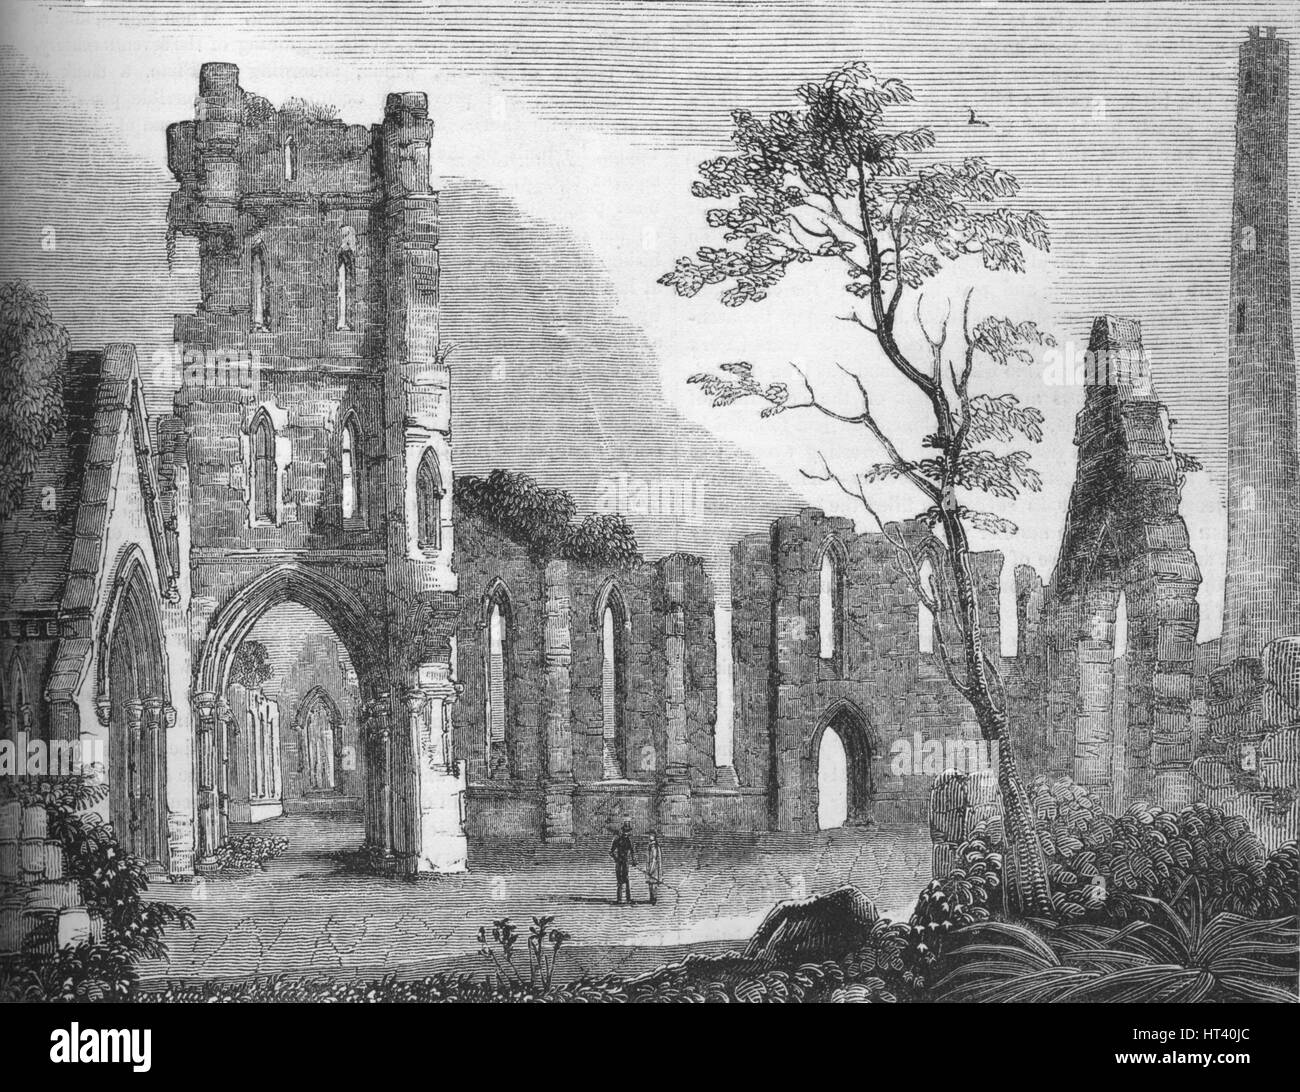 'Cathedral of Kildare', 1845. Artist: Unknown. Stock Photo